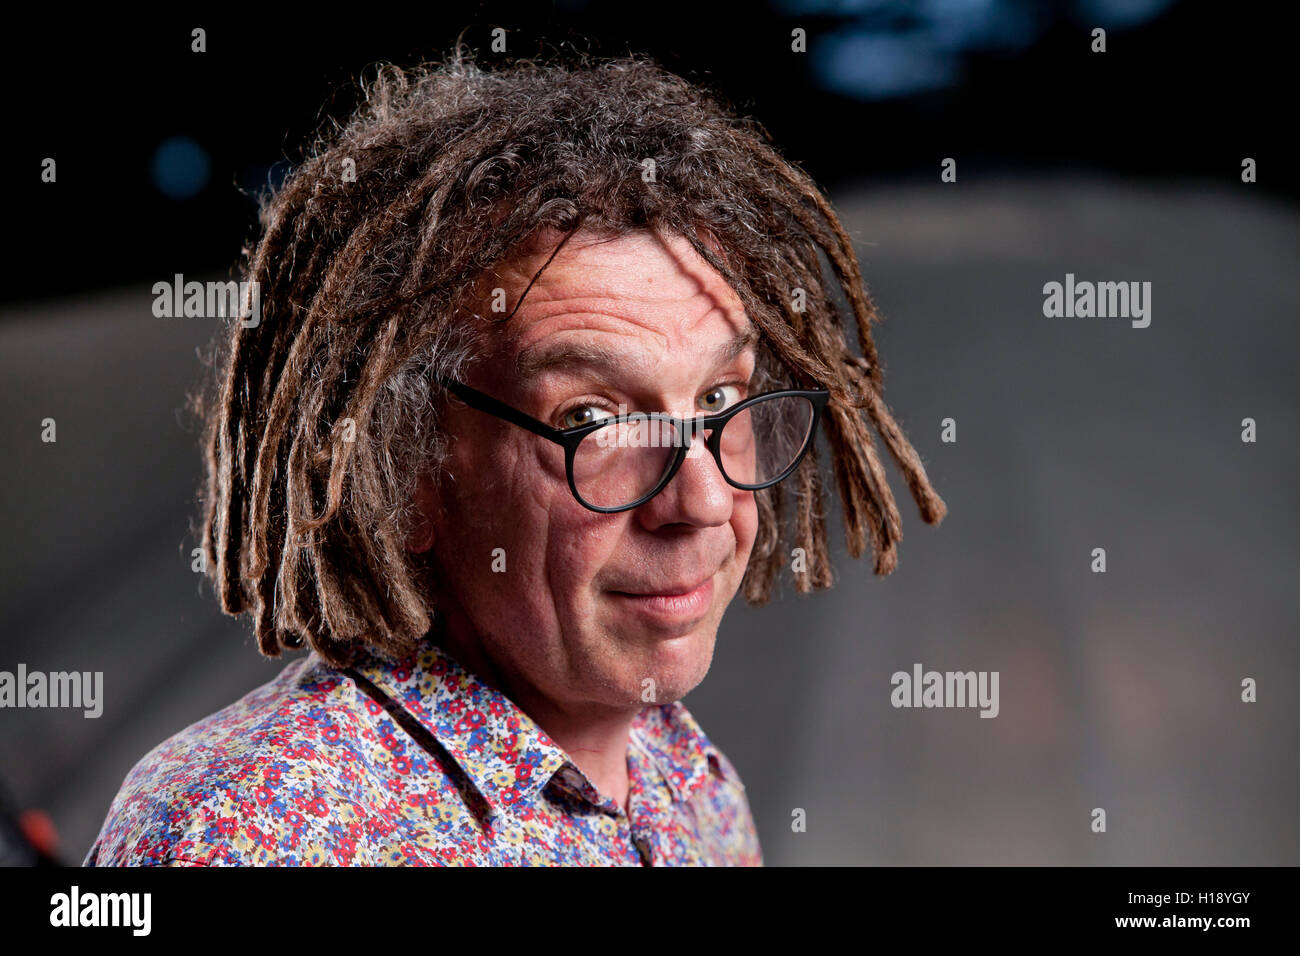 David Goldblatt, the sports writer, journalist and author, at the Edinburgh International Book Festival. Edinburgh, - Stock Image